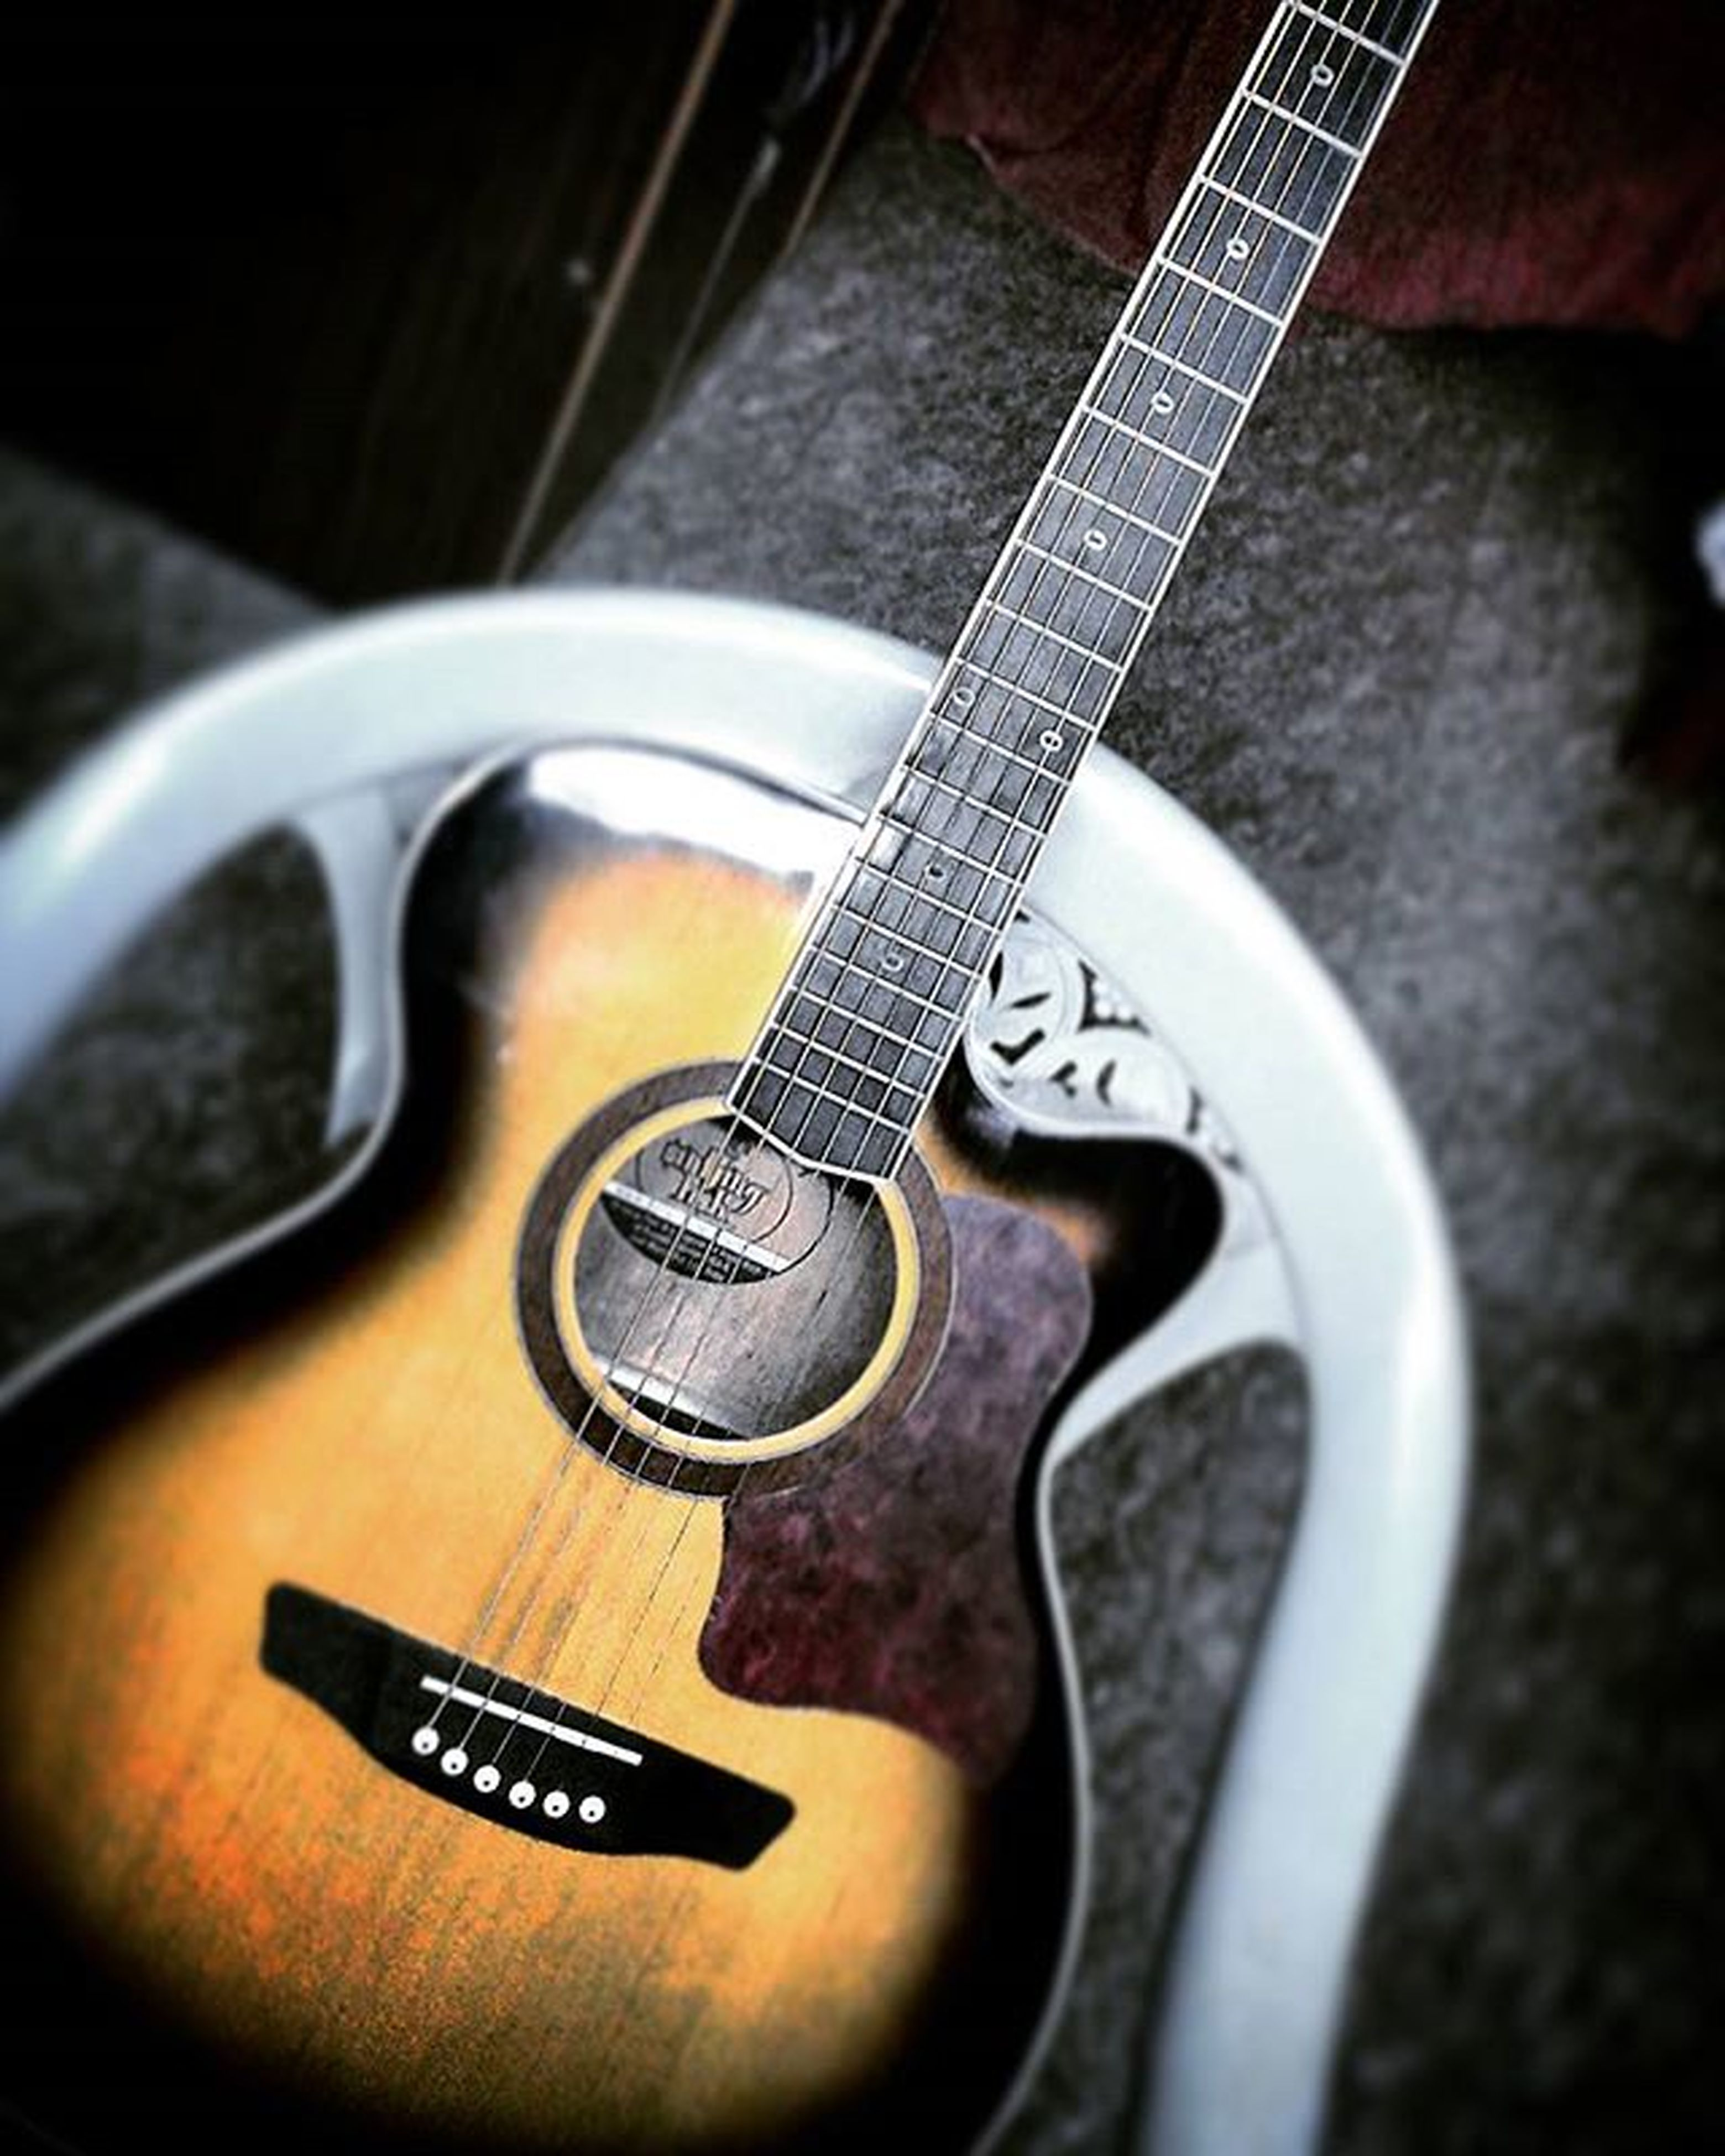 music, musical instrument, guitar, musical equipment, indoors, close-up, musical instrument string, arts culture and entertainment, metal, high angle view, acoustic guitar, still life, string instrument, technology, single object, selective focus, connection, equipment, focus on foreground, no people